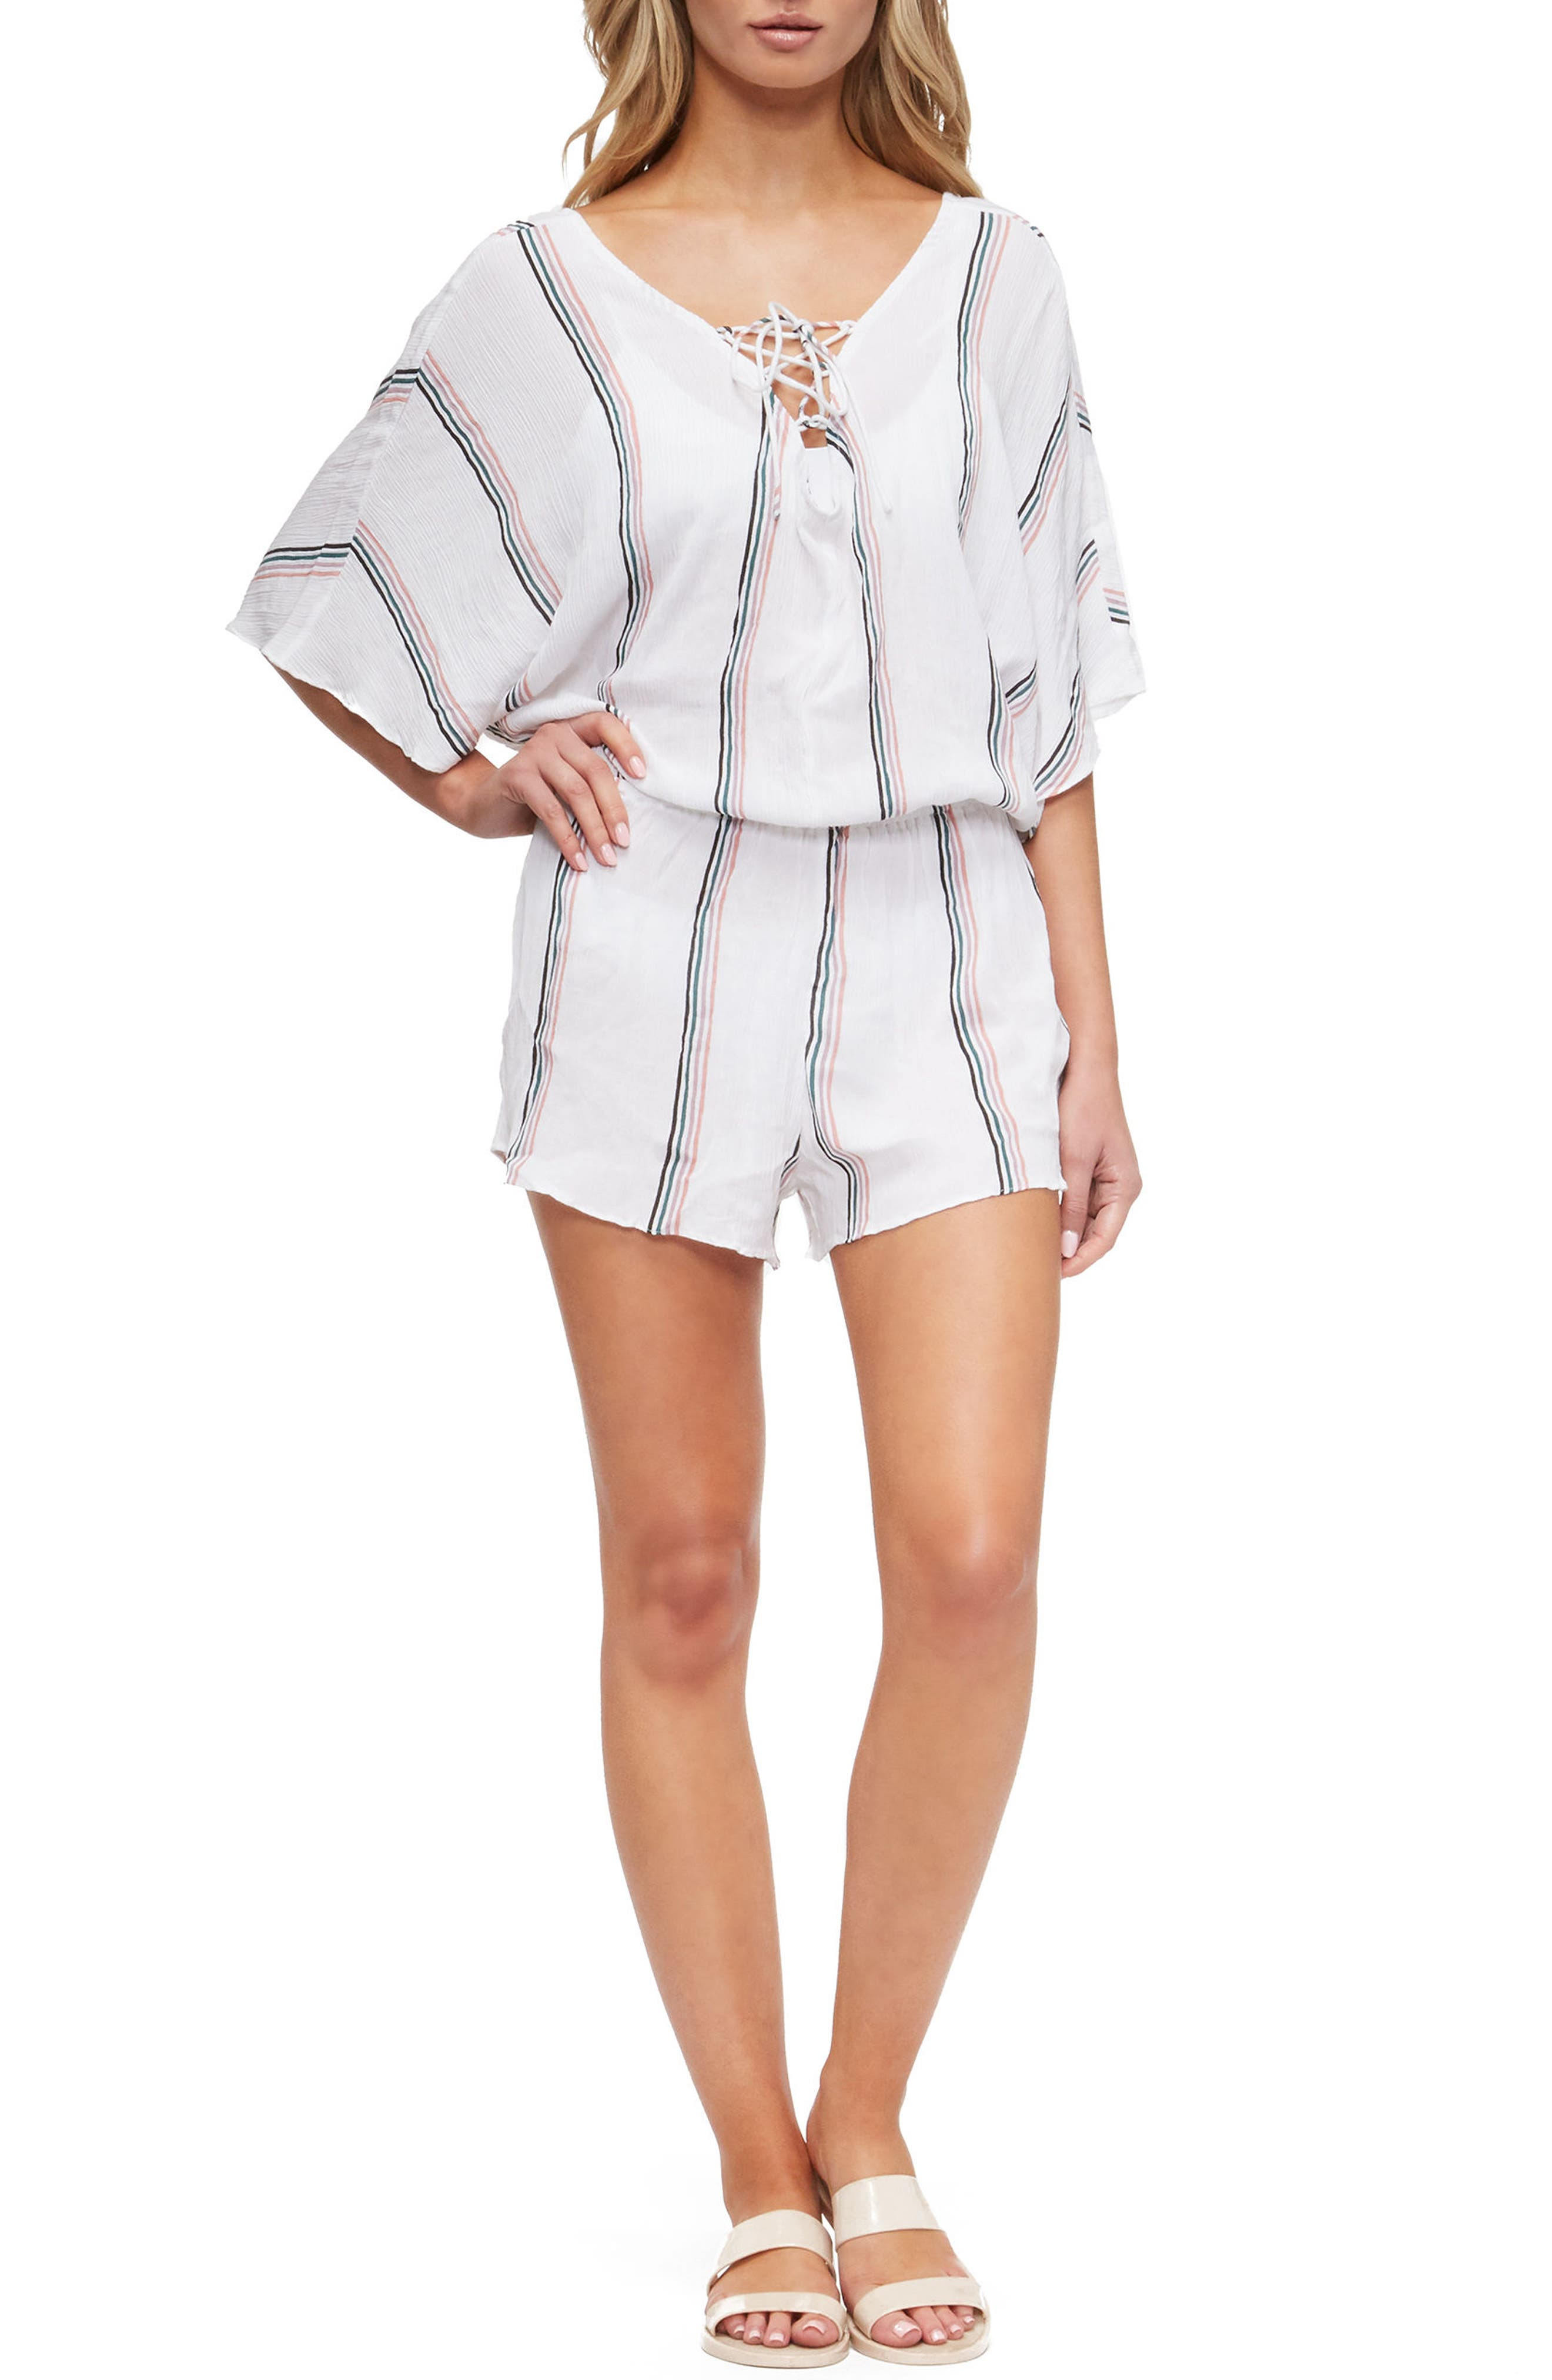 Harmony Cover-Up Romper,                             Main thumbnail 1, color,                             White/Coral Stripe